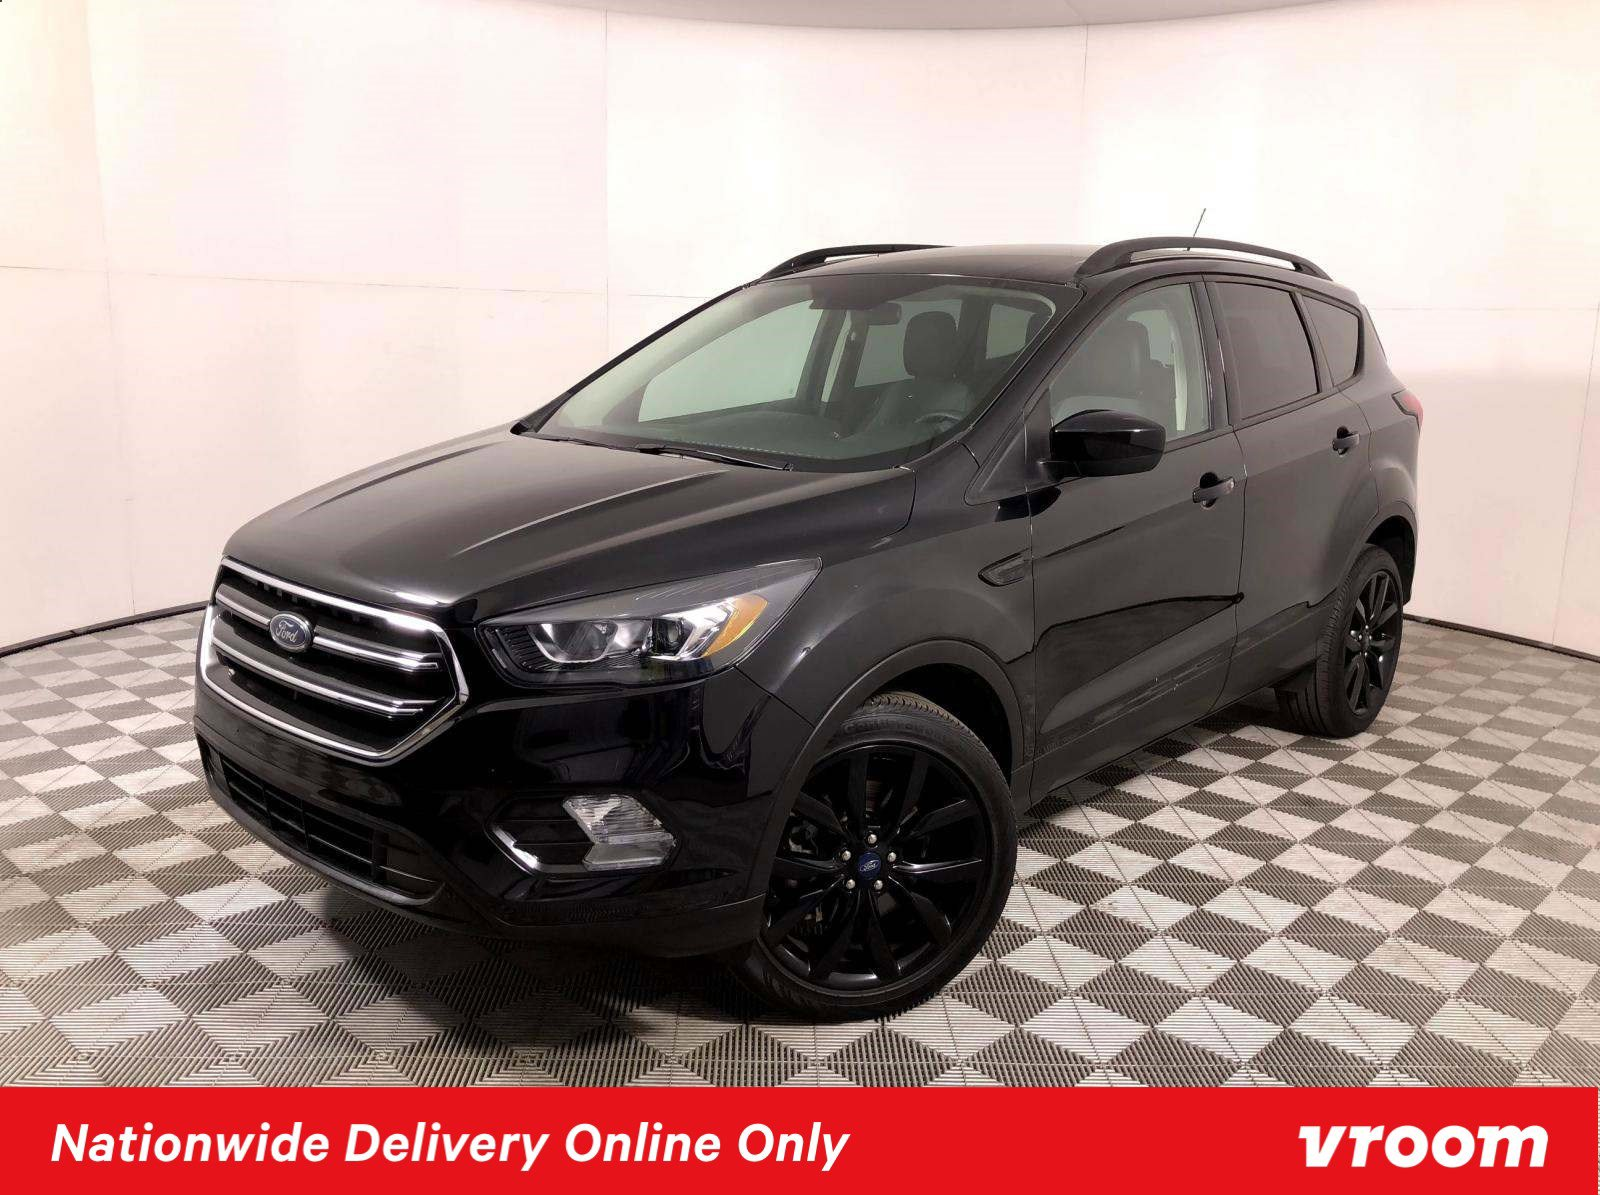 2019 Ford Escape 4WD SE image